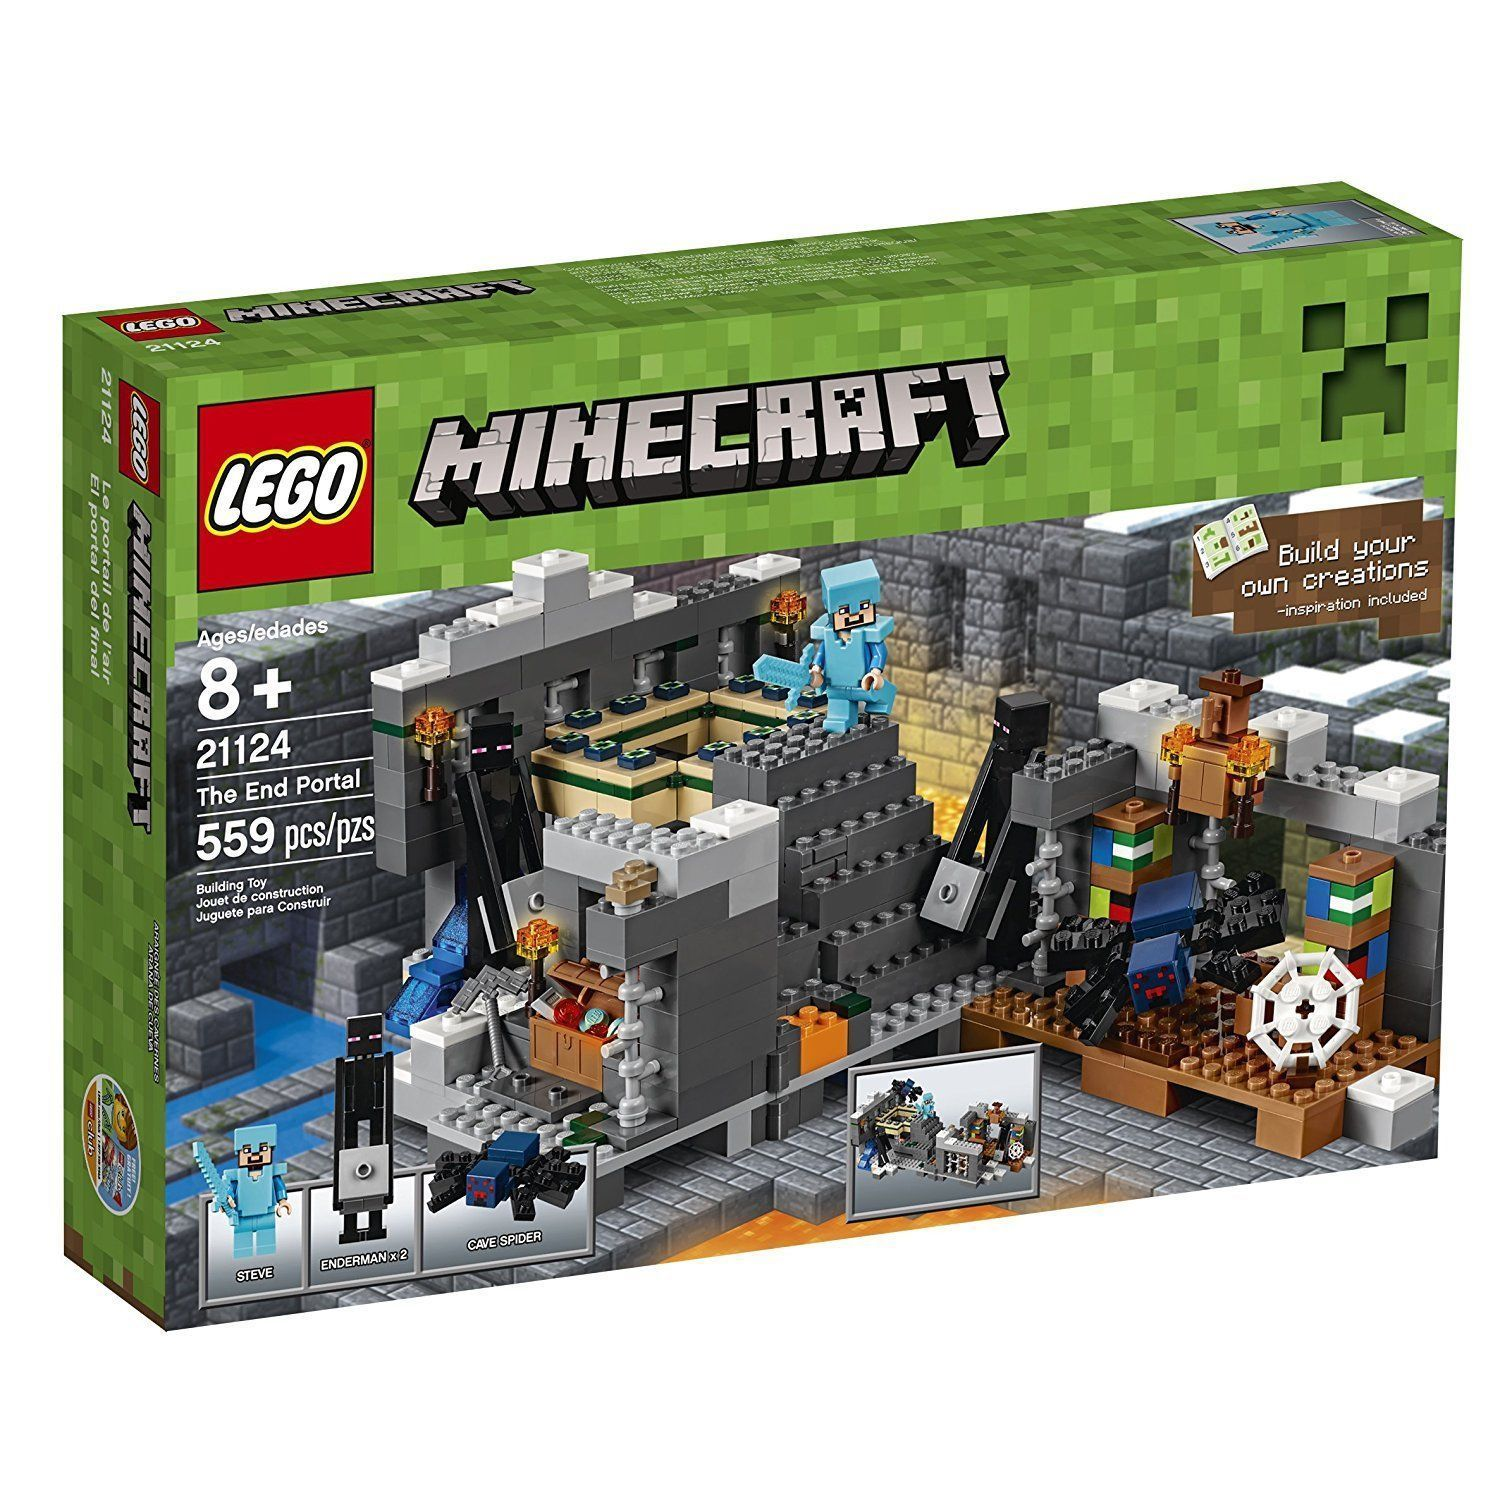 LEGO Minecraft The End Portal Set 21124 [New Building Set]